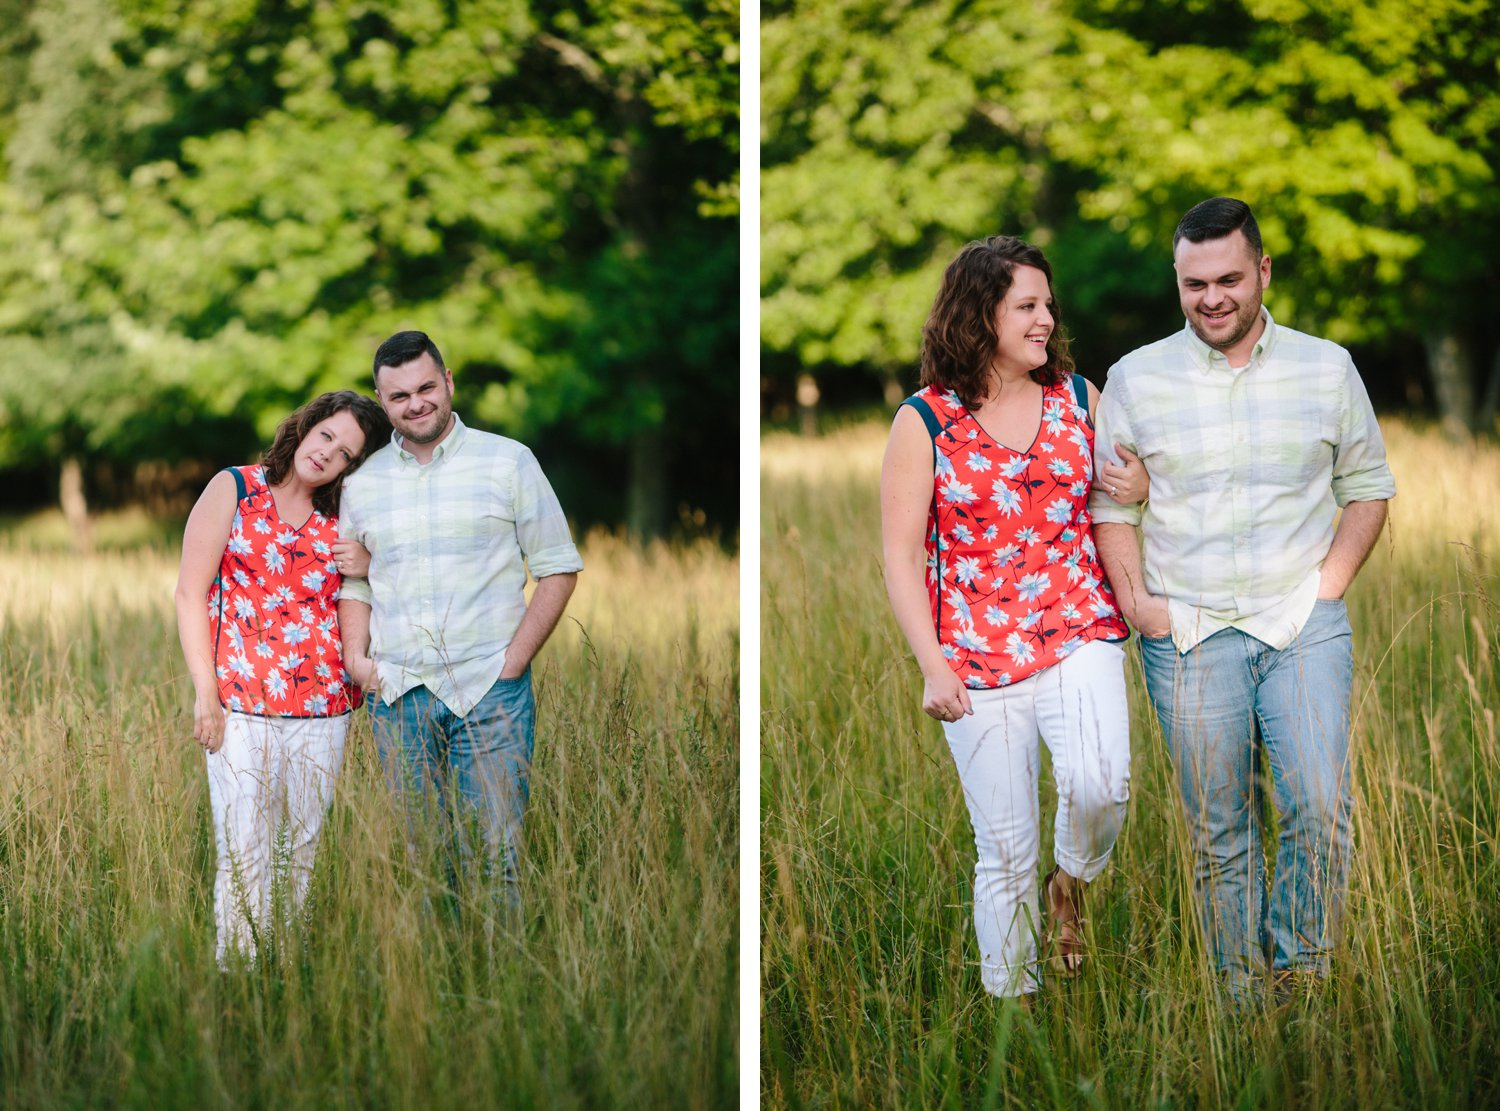 CSP-Sara-Chris-Engagement-003.jpg